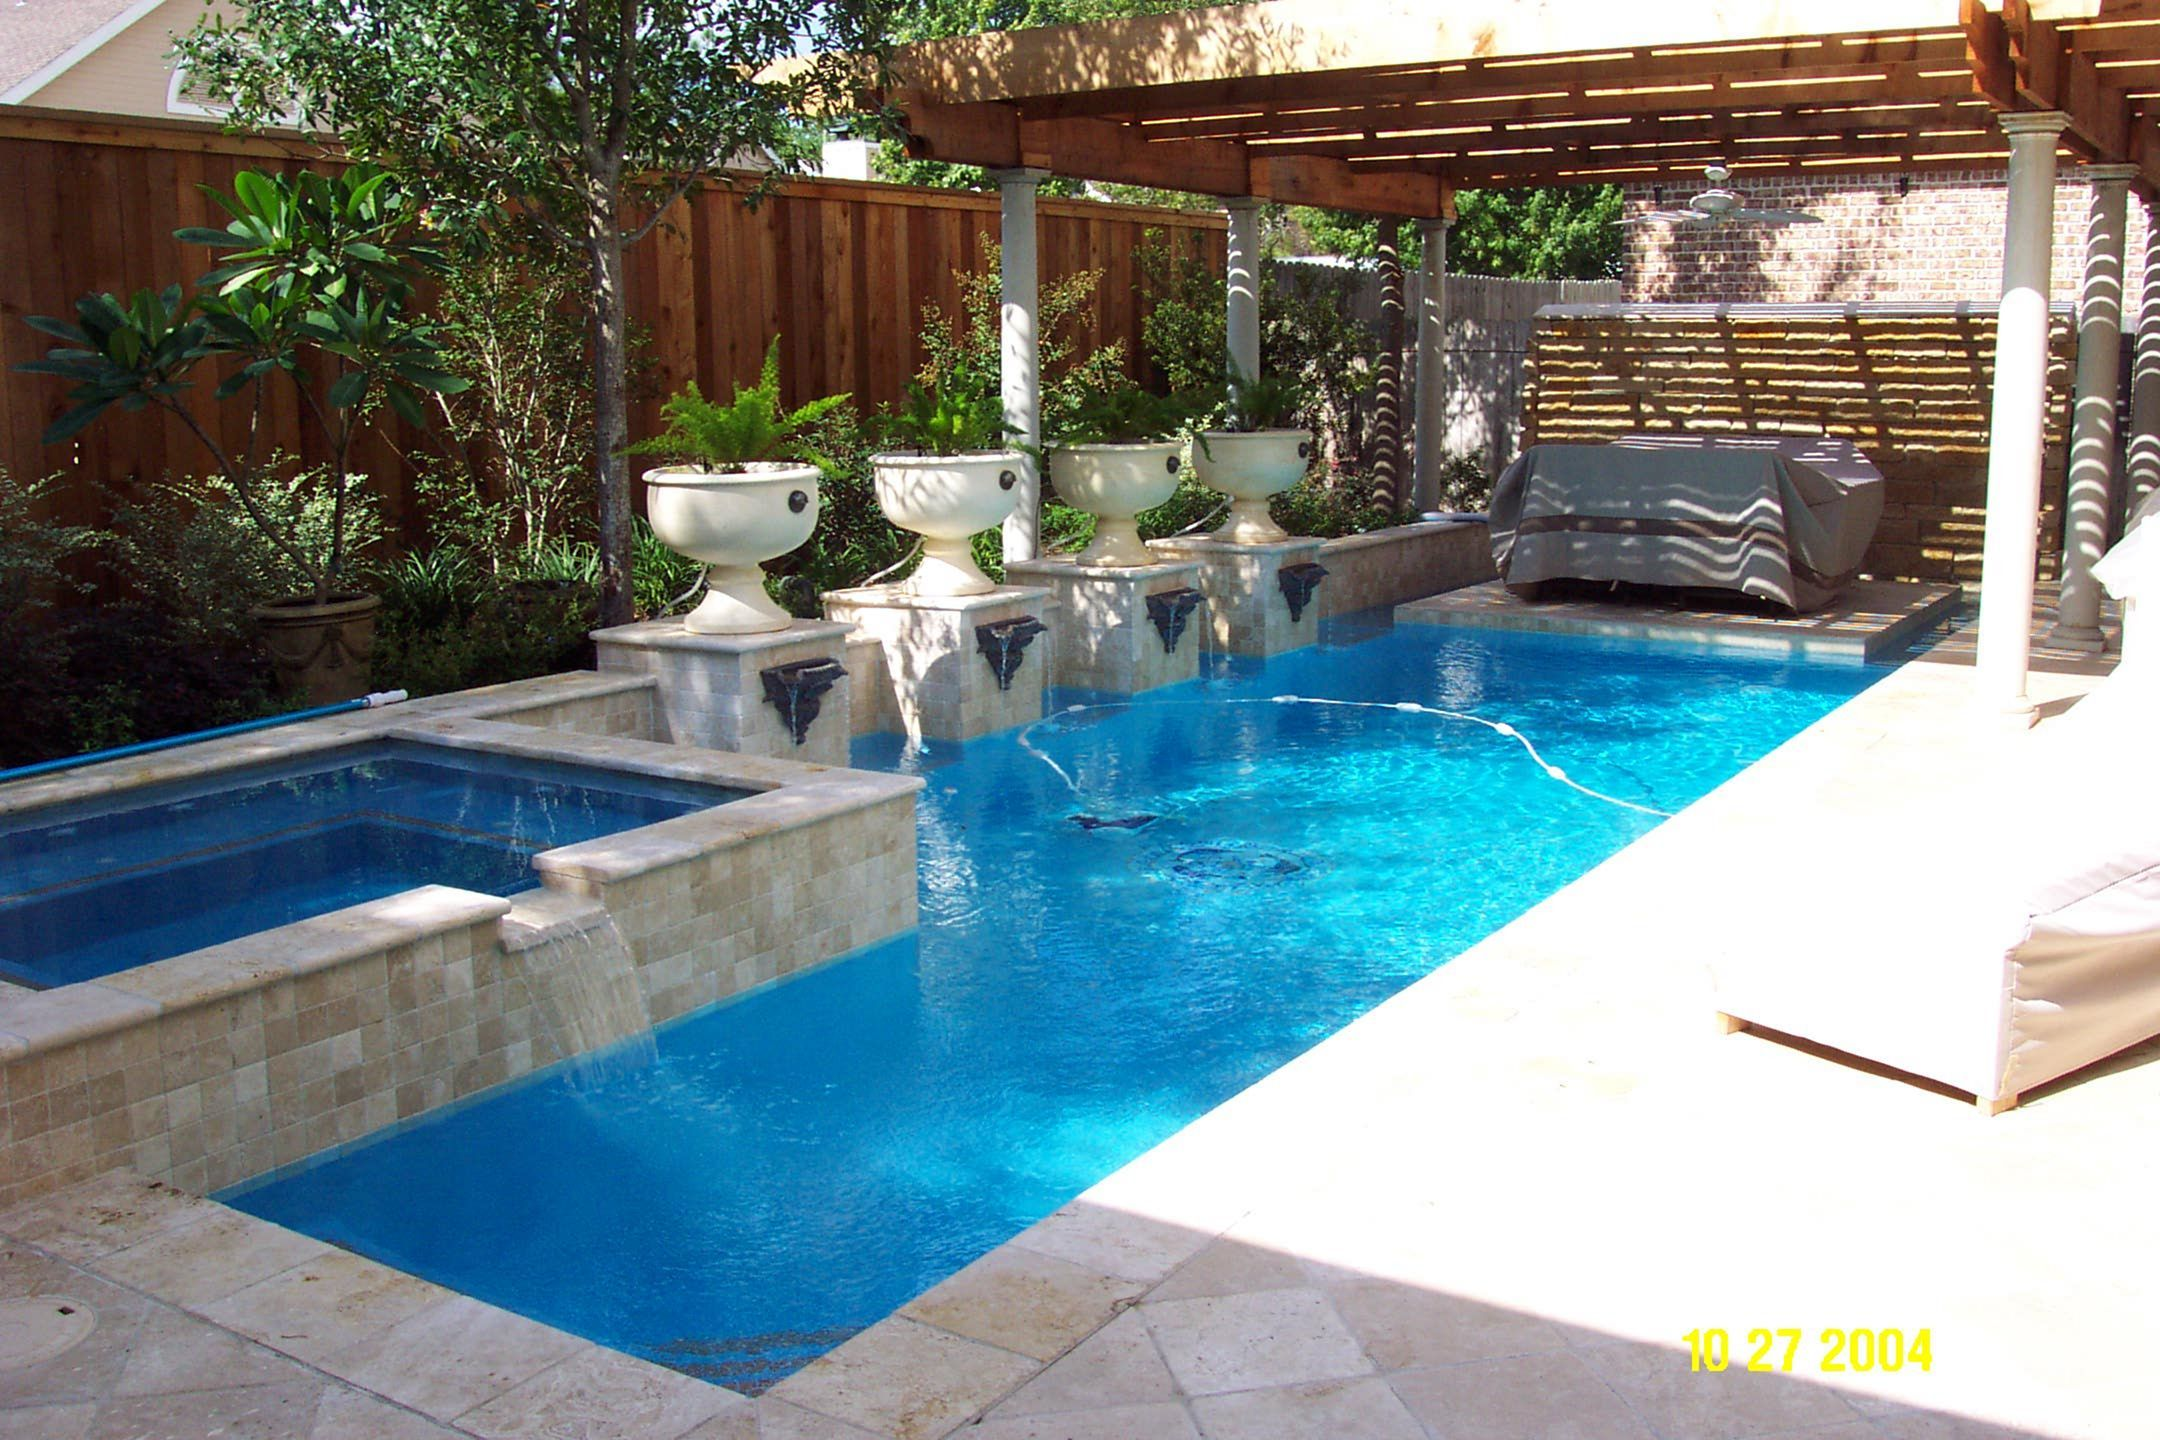 Awesome Pools Backyard Design For Luxury Home 16 Best Picture For Inspiration Small Pool Design Small Backyard Pools Pools For Small Yards Diy backyard beach pool